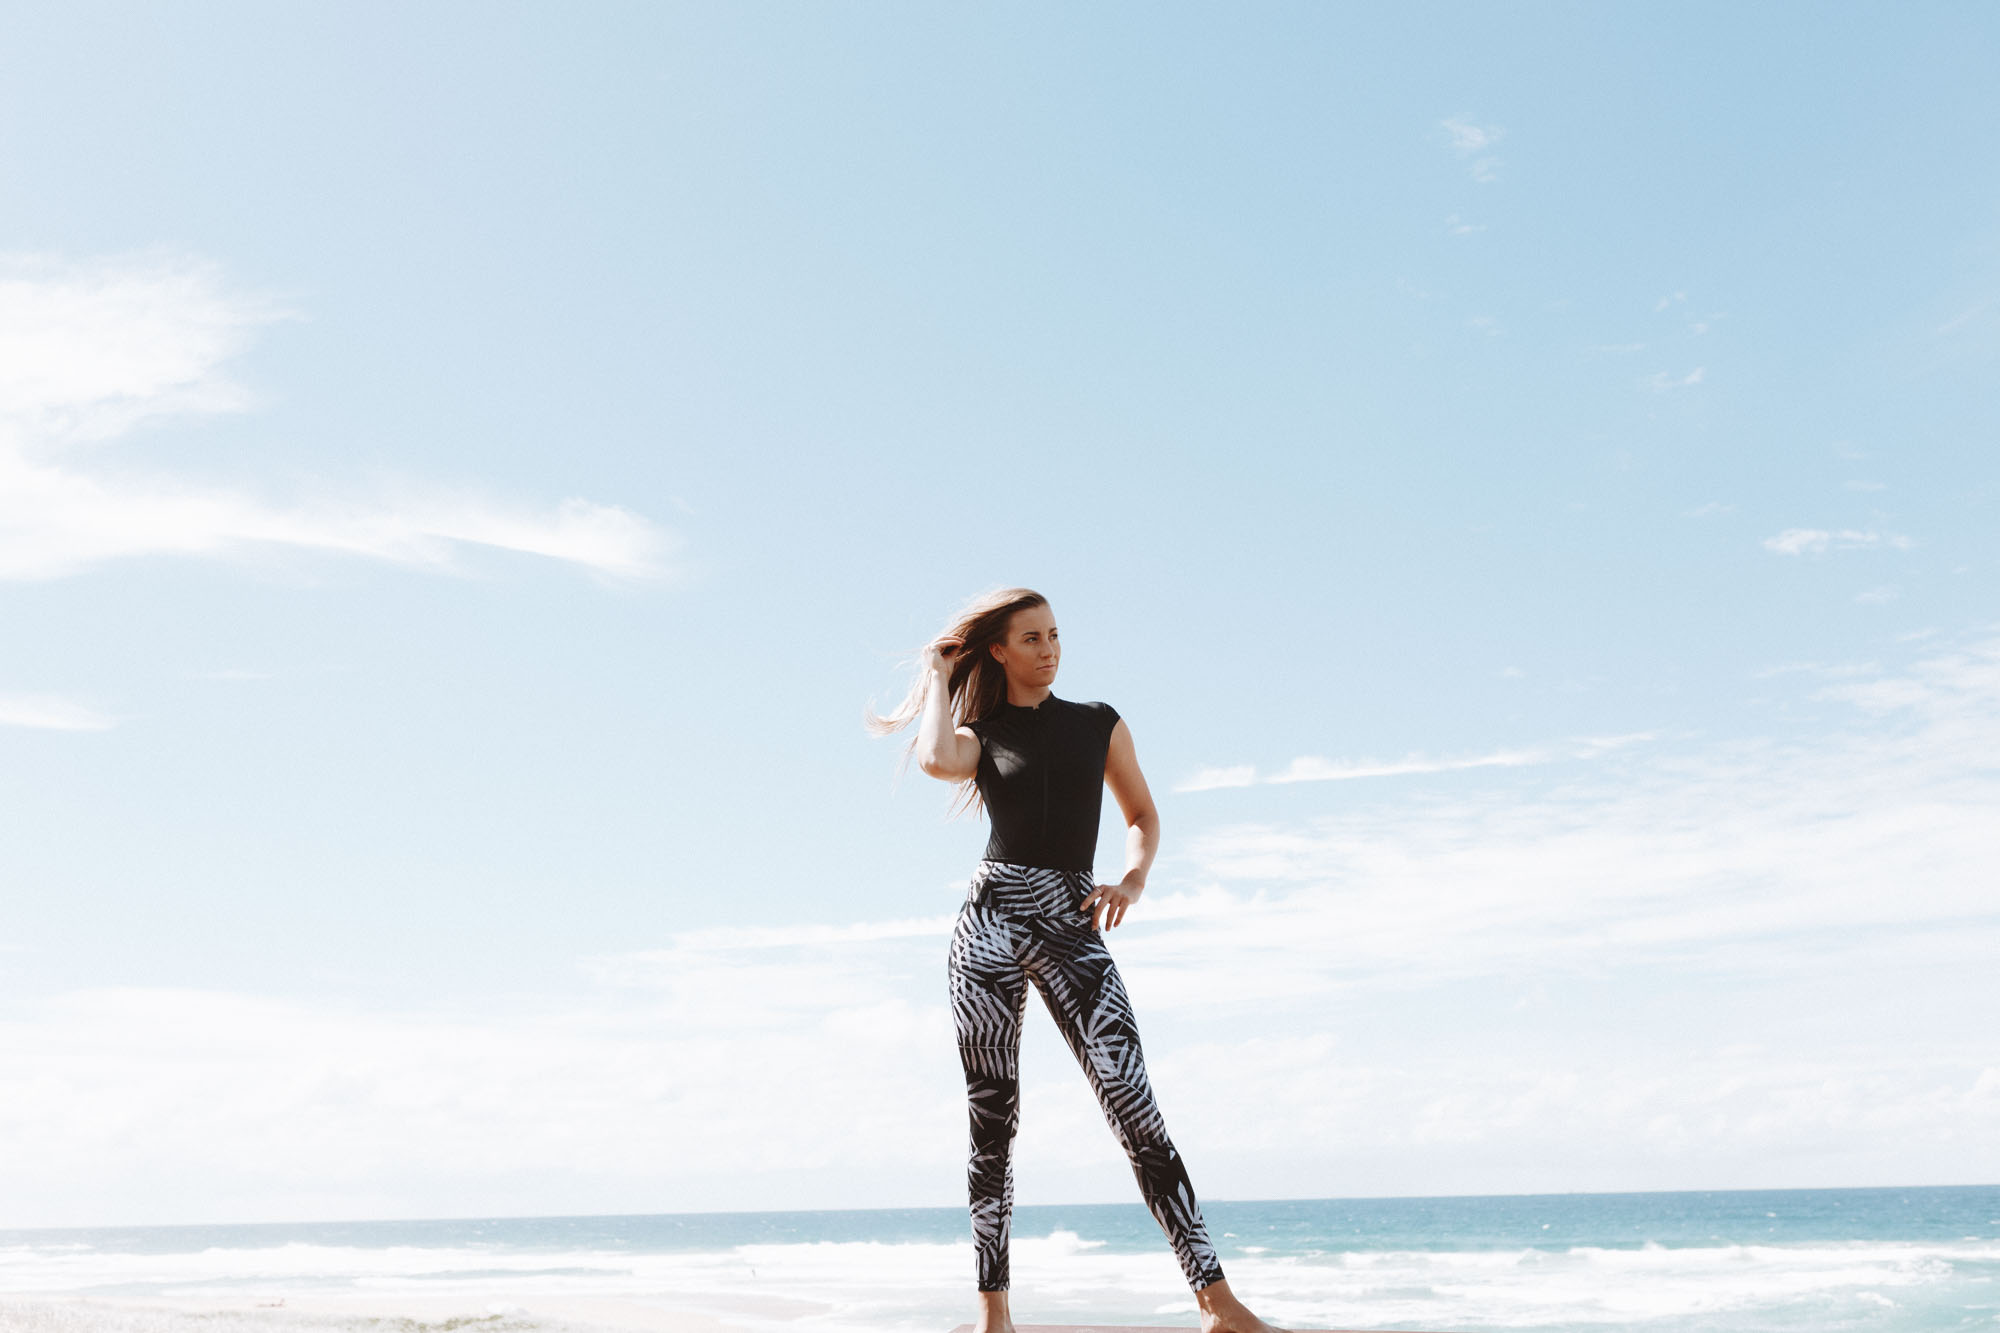 High Waisted, Sculpting and Detailed Panelling Design - The Original Hybrid Leggings feature a flattering high waist with ultra-sculpting power-mesh technology. The fabric is also highly durable out of the water and is squat and see-through tested (so no gym mishaps here!)